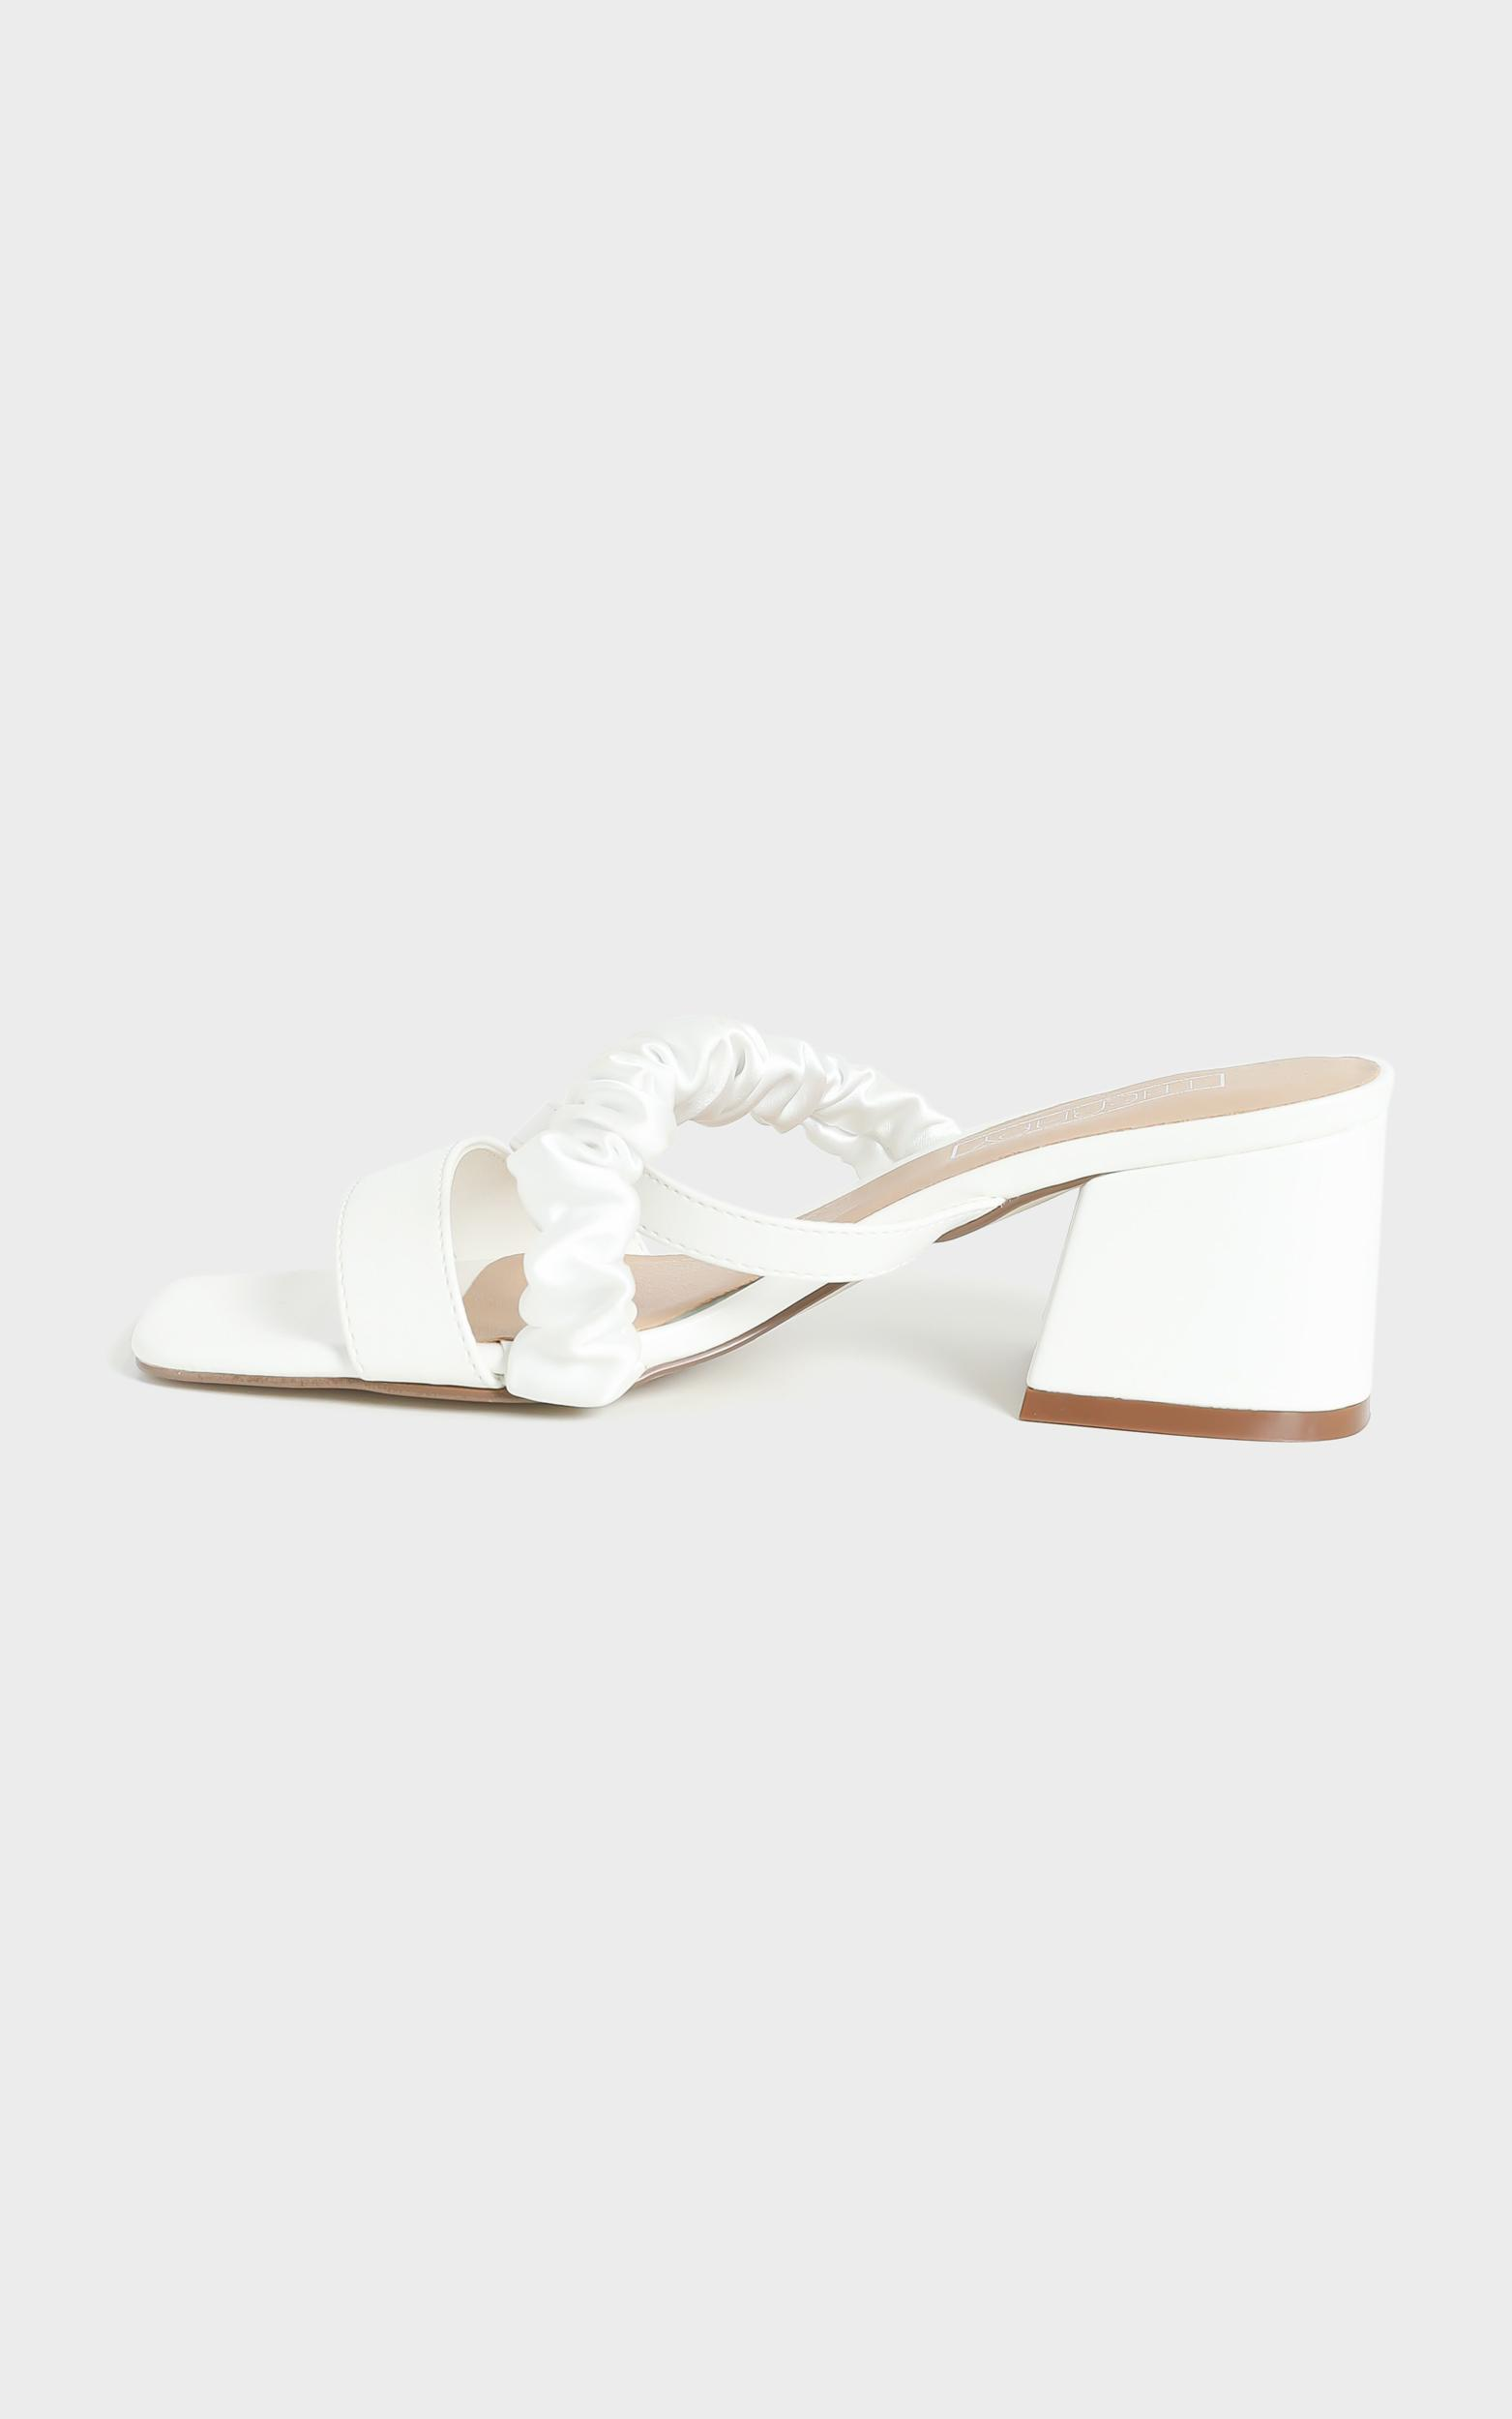 Therapy - Potenza Heels in White - 5, White, hi-res image number null